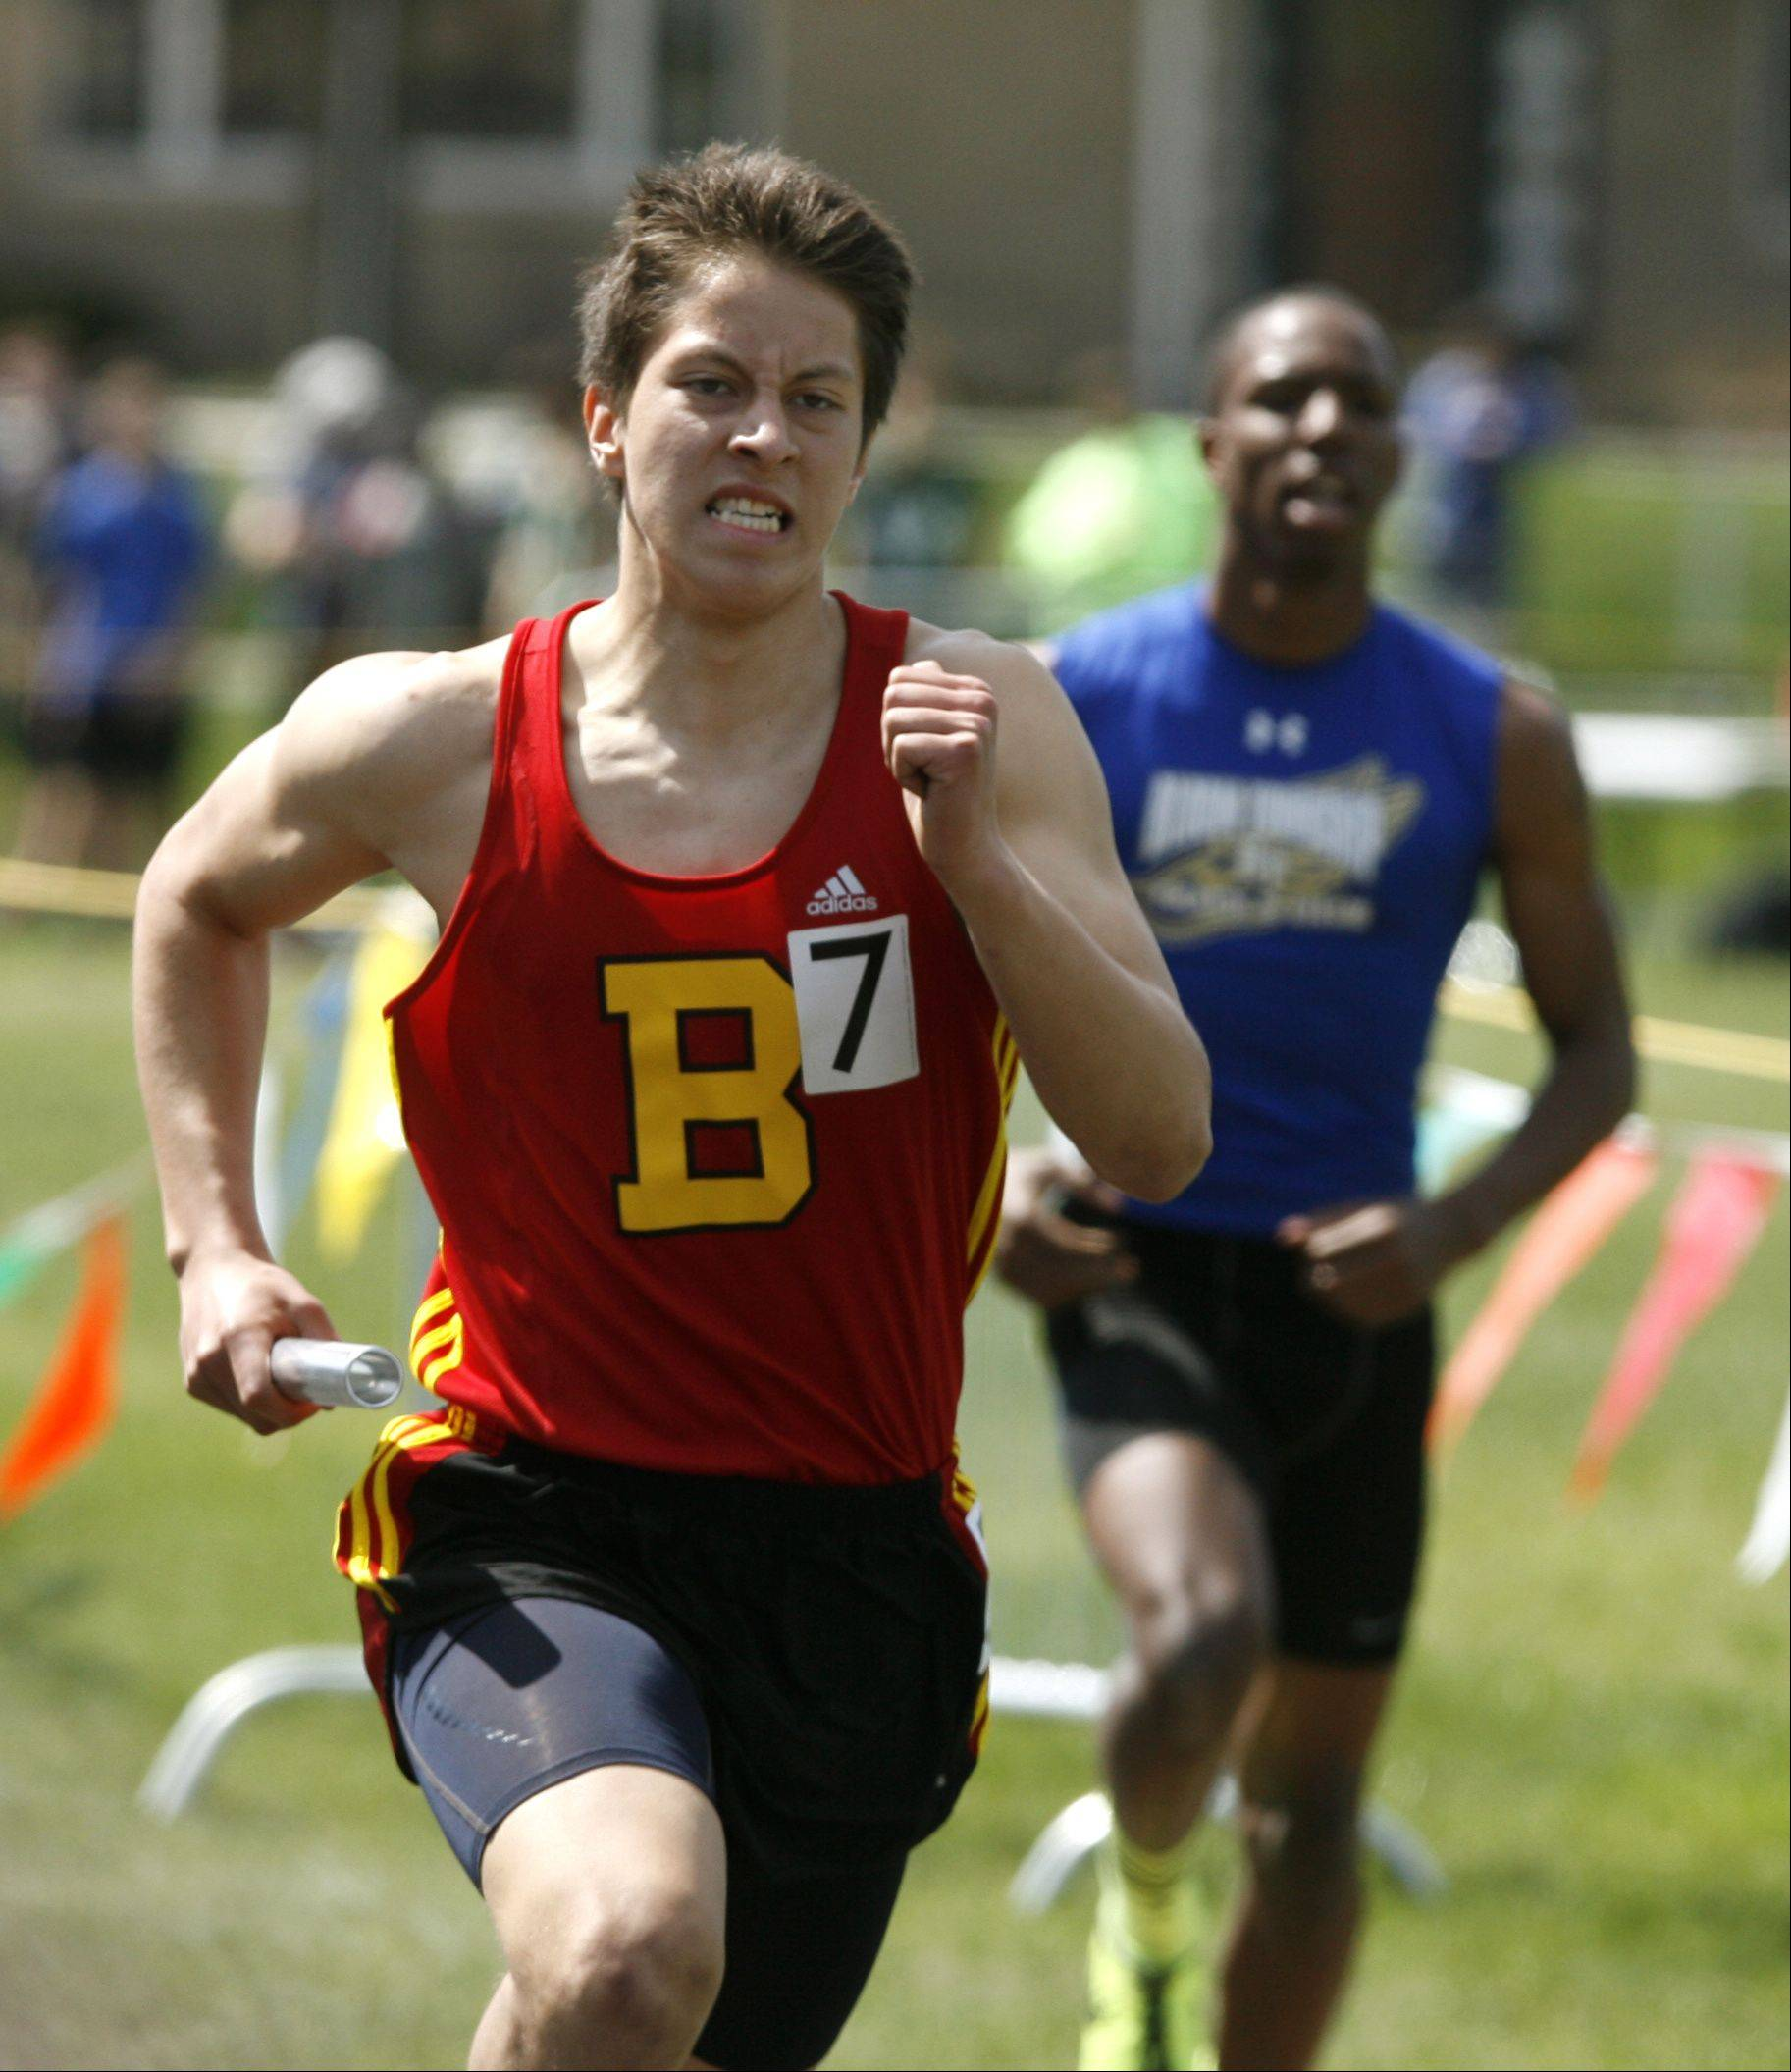 Batavia's Omar Medina anchors the 4 x 400 meter relay, during the final heat of the Glenbard West boys track invitational.